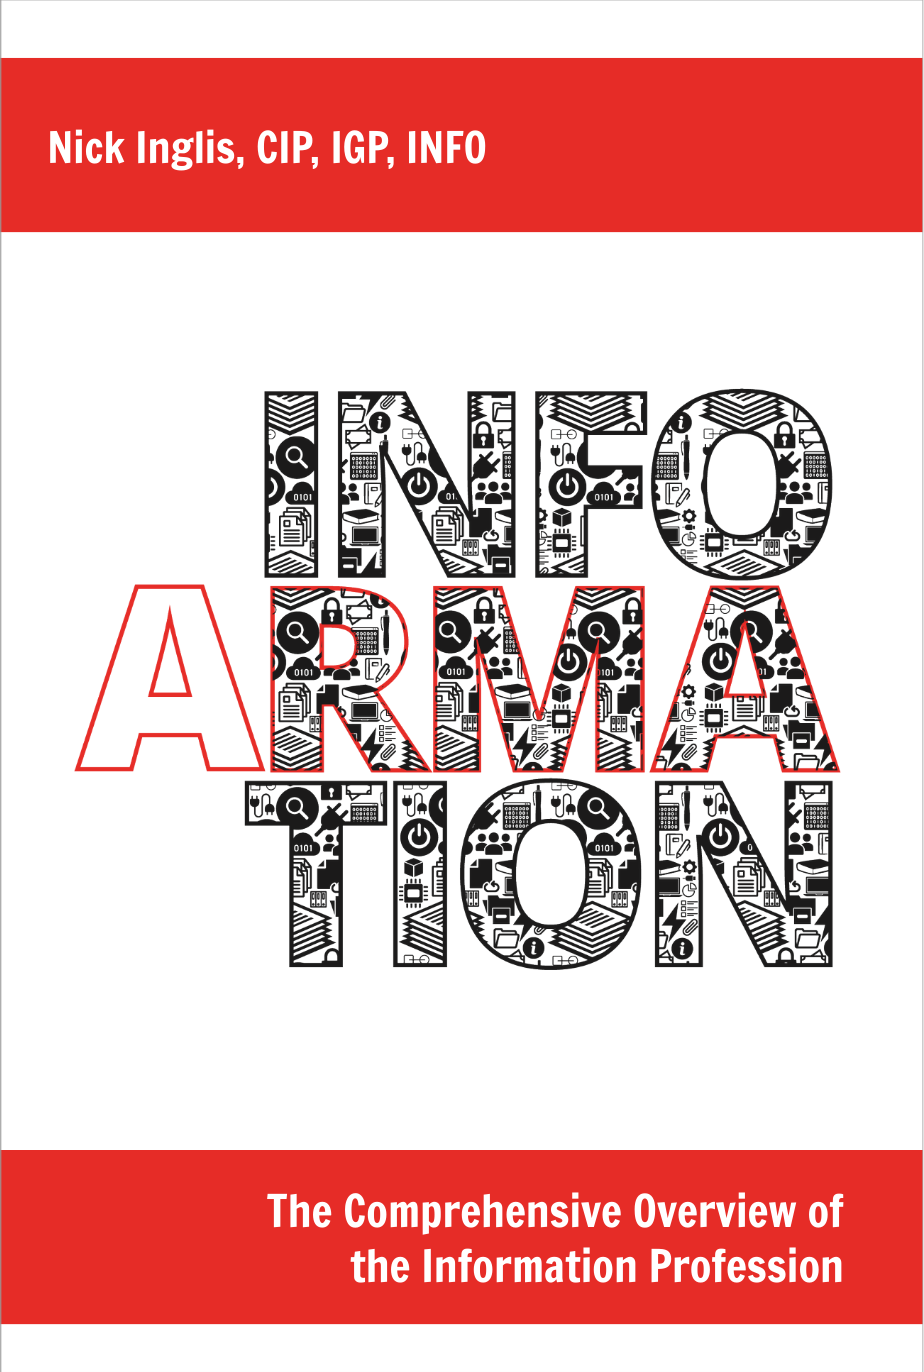 INFORMATION: The Comprehensive Overview of the Information Profession